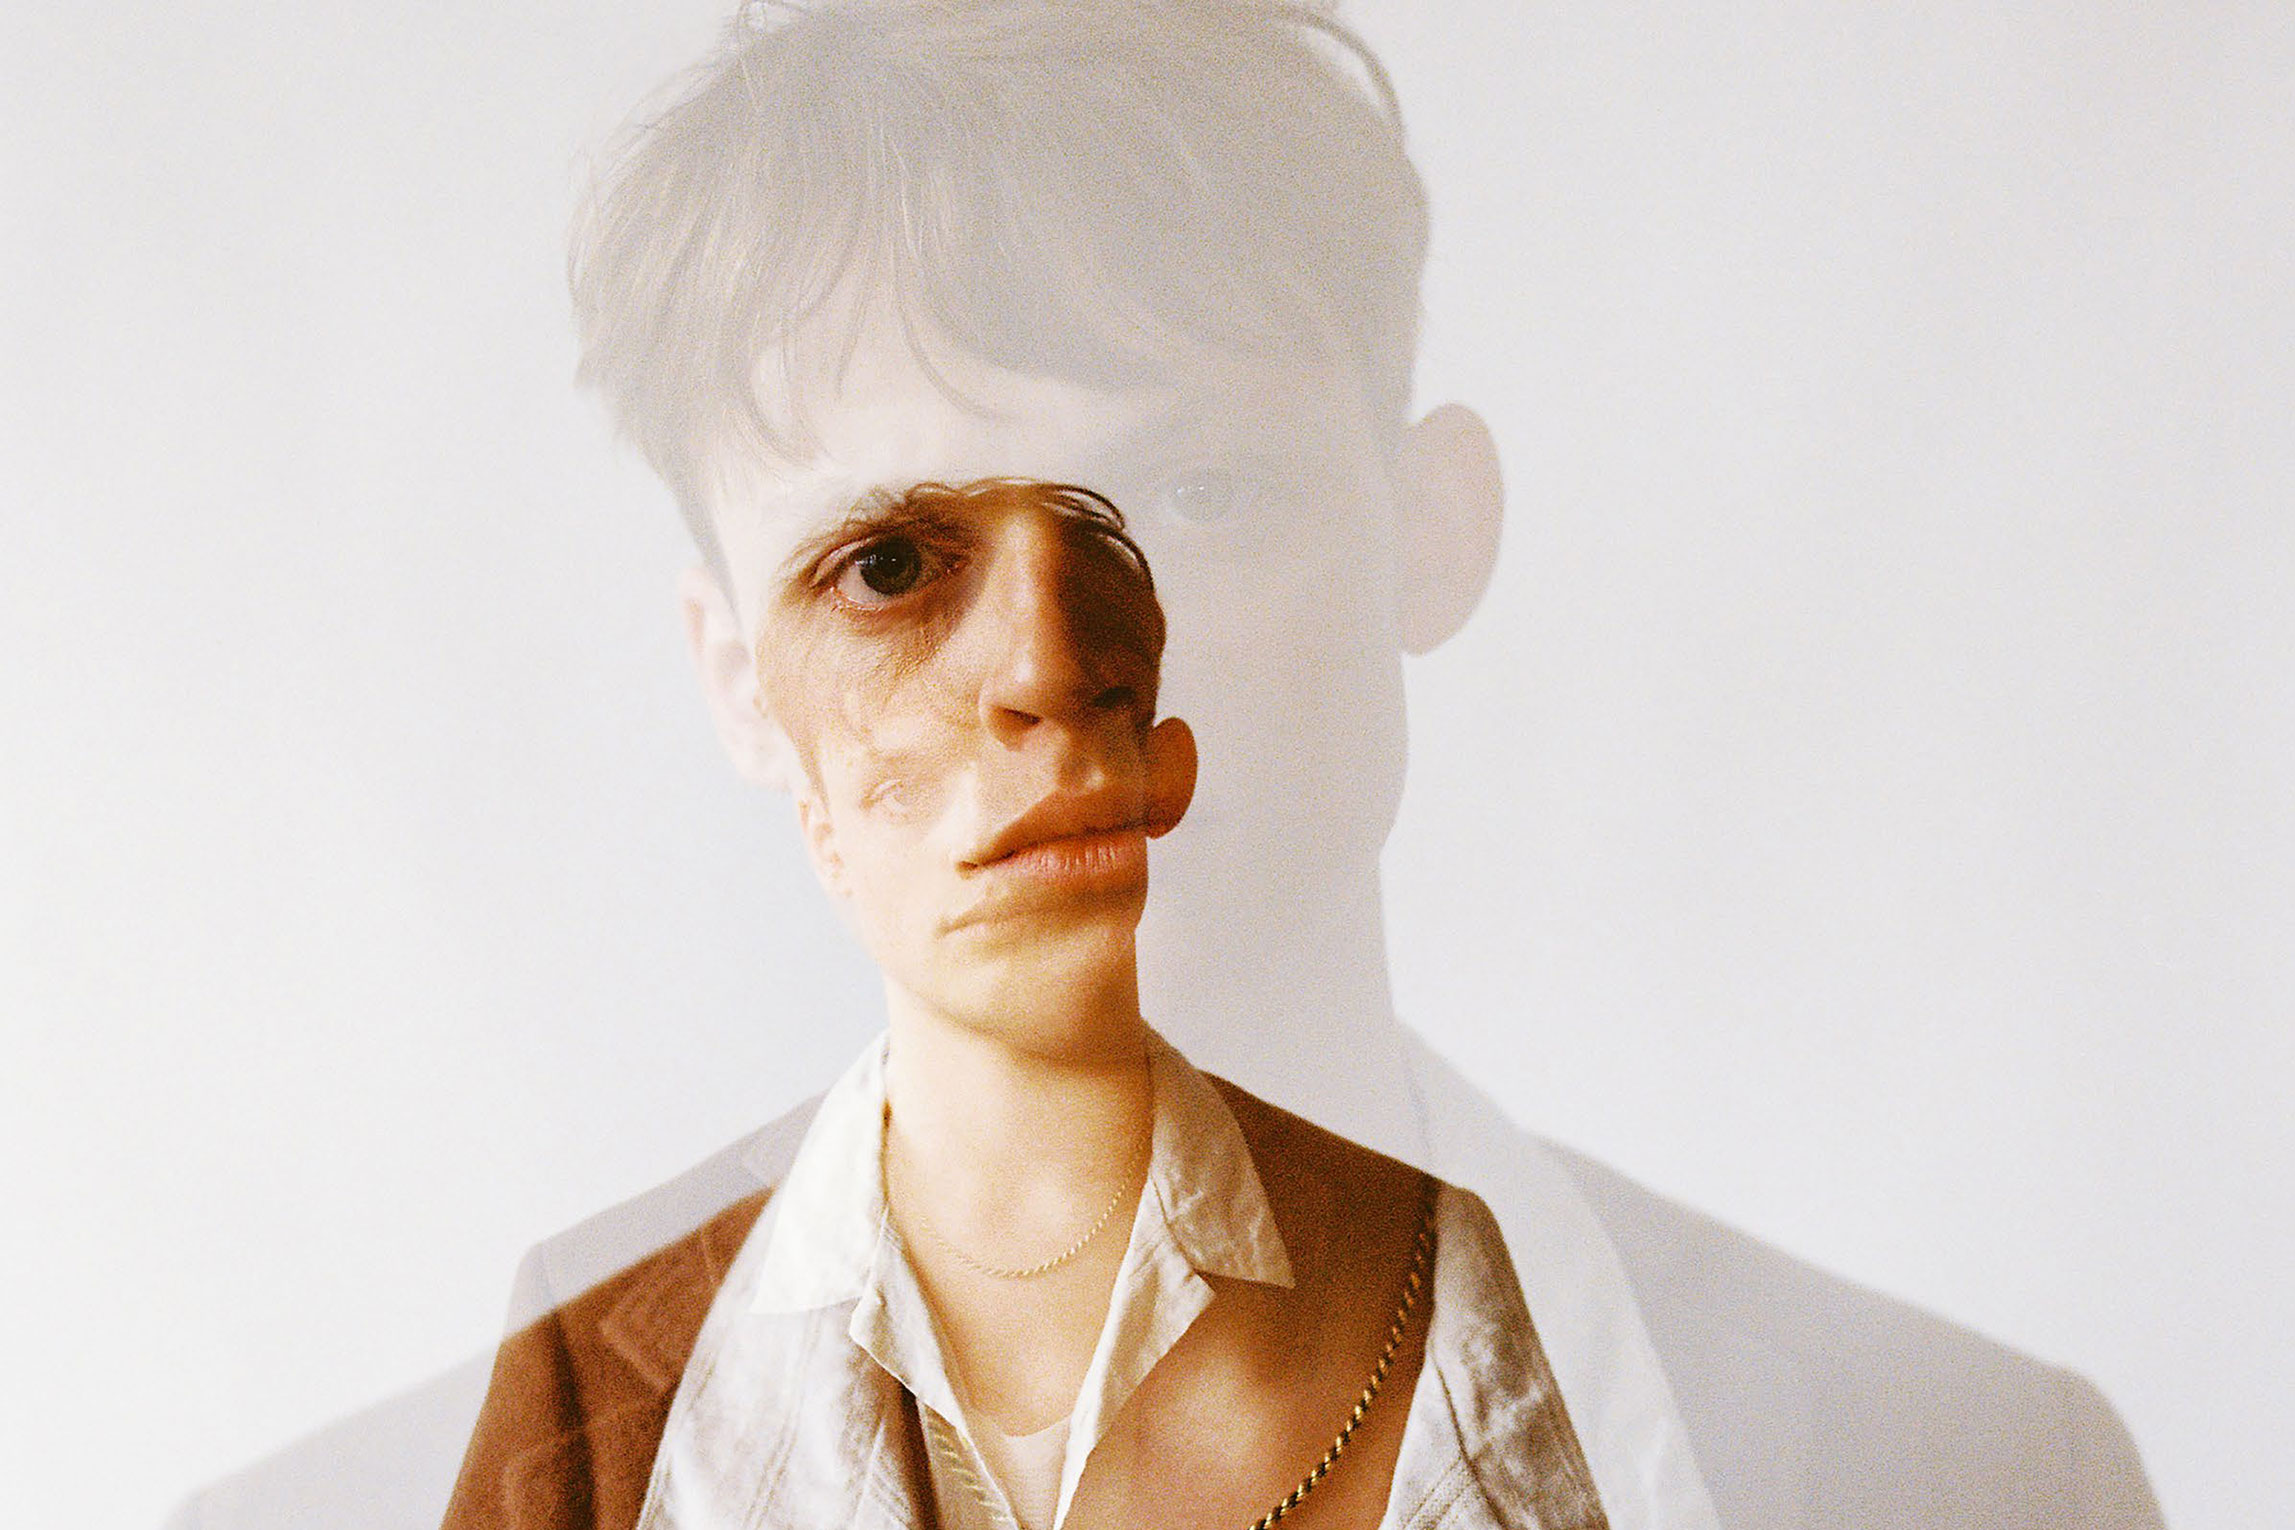 A double exposure of a young man wearing a seventies style shirt and jacket.